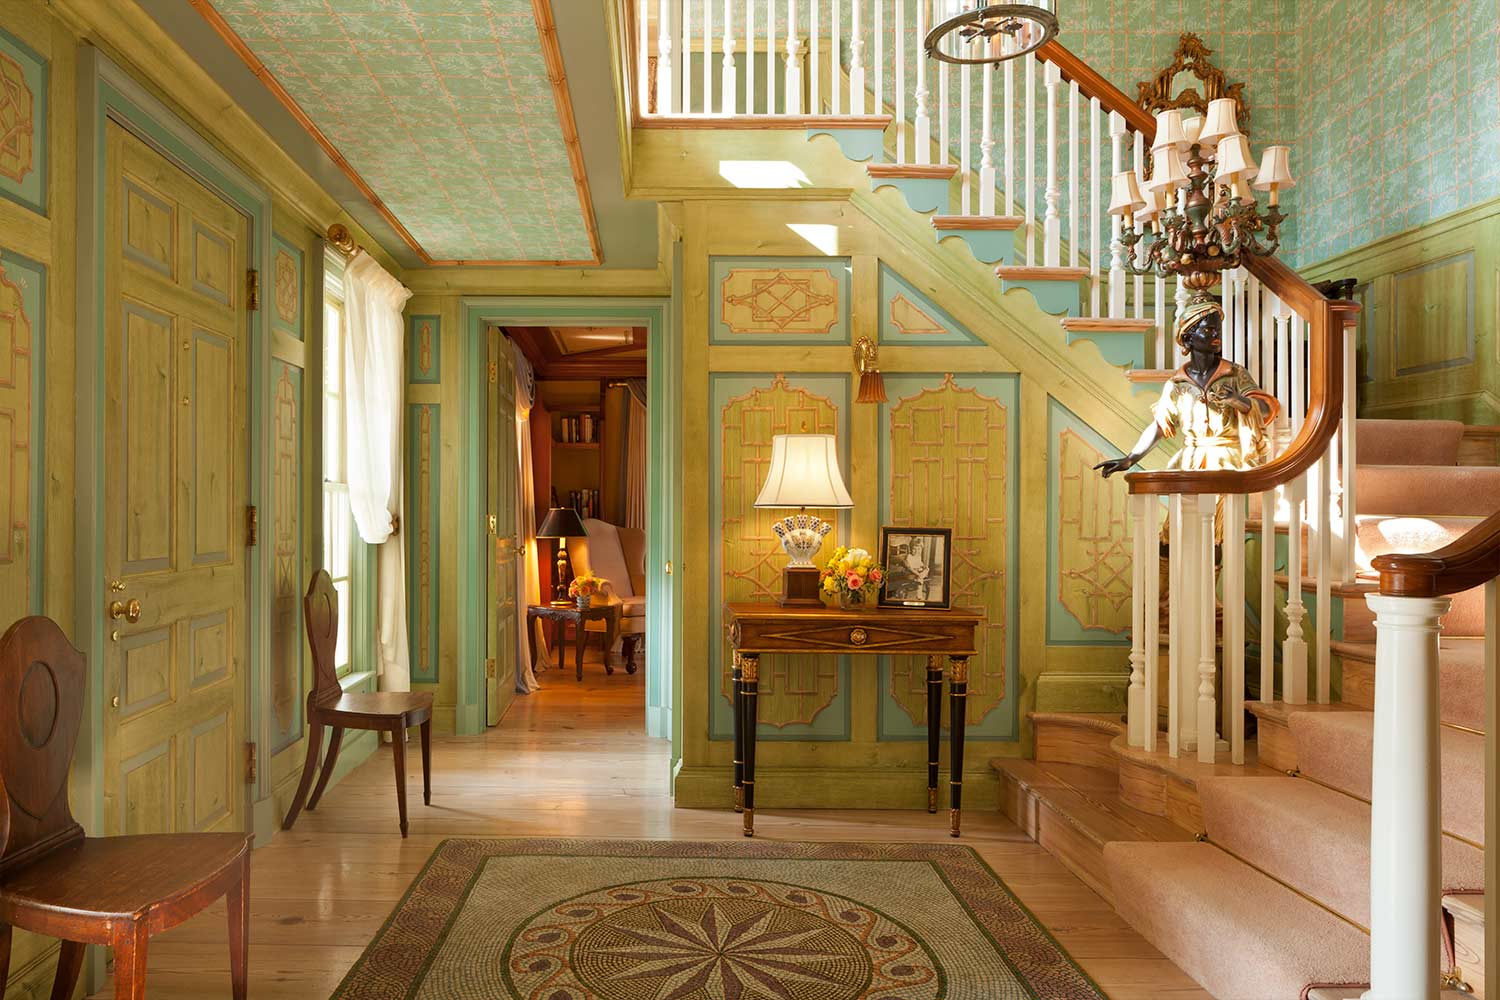 The foyer of the Claiborne House featuring a beautiful, wrap around staircase, hand painted green paneled walls and antique center rug.